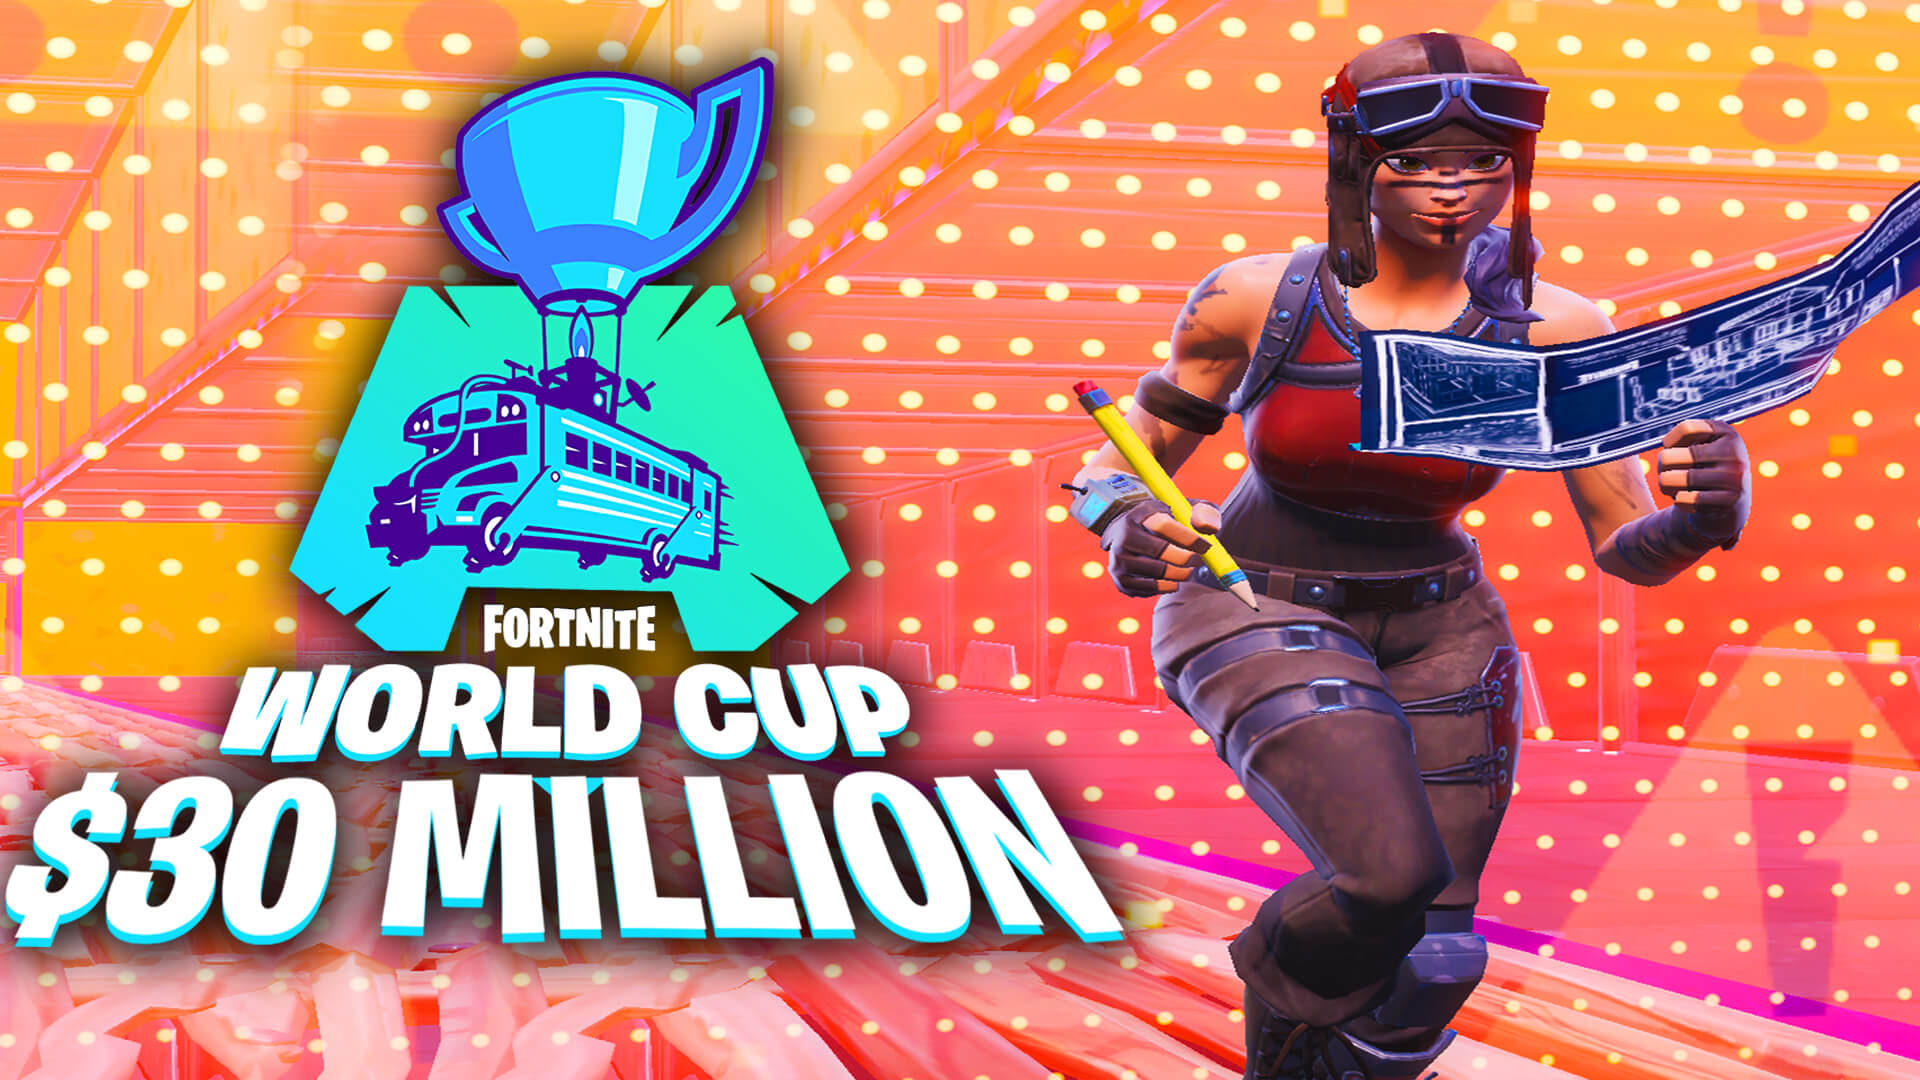 FORTNITE WORLD CUP EDIT COURSE